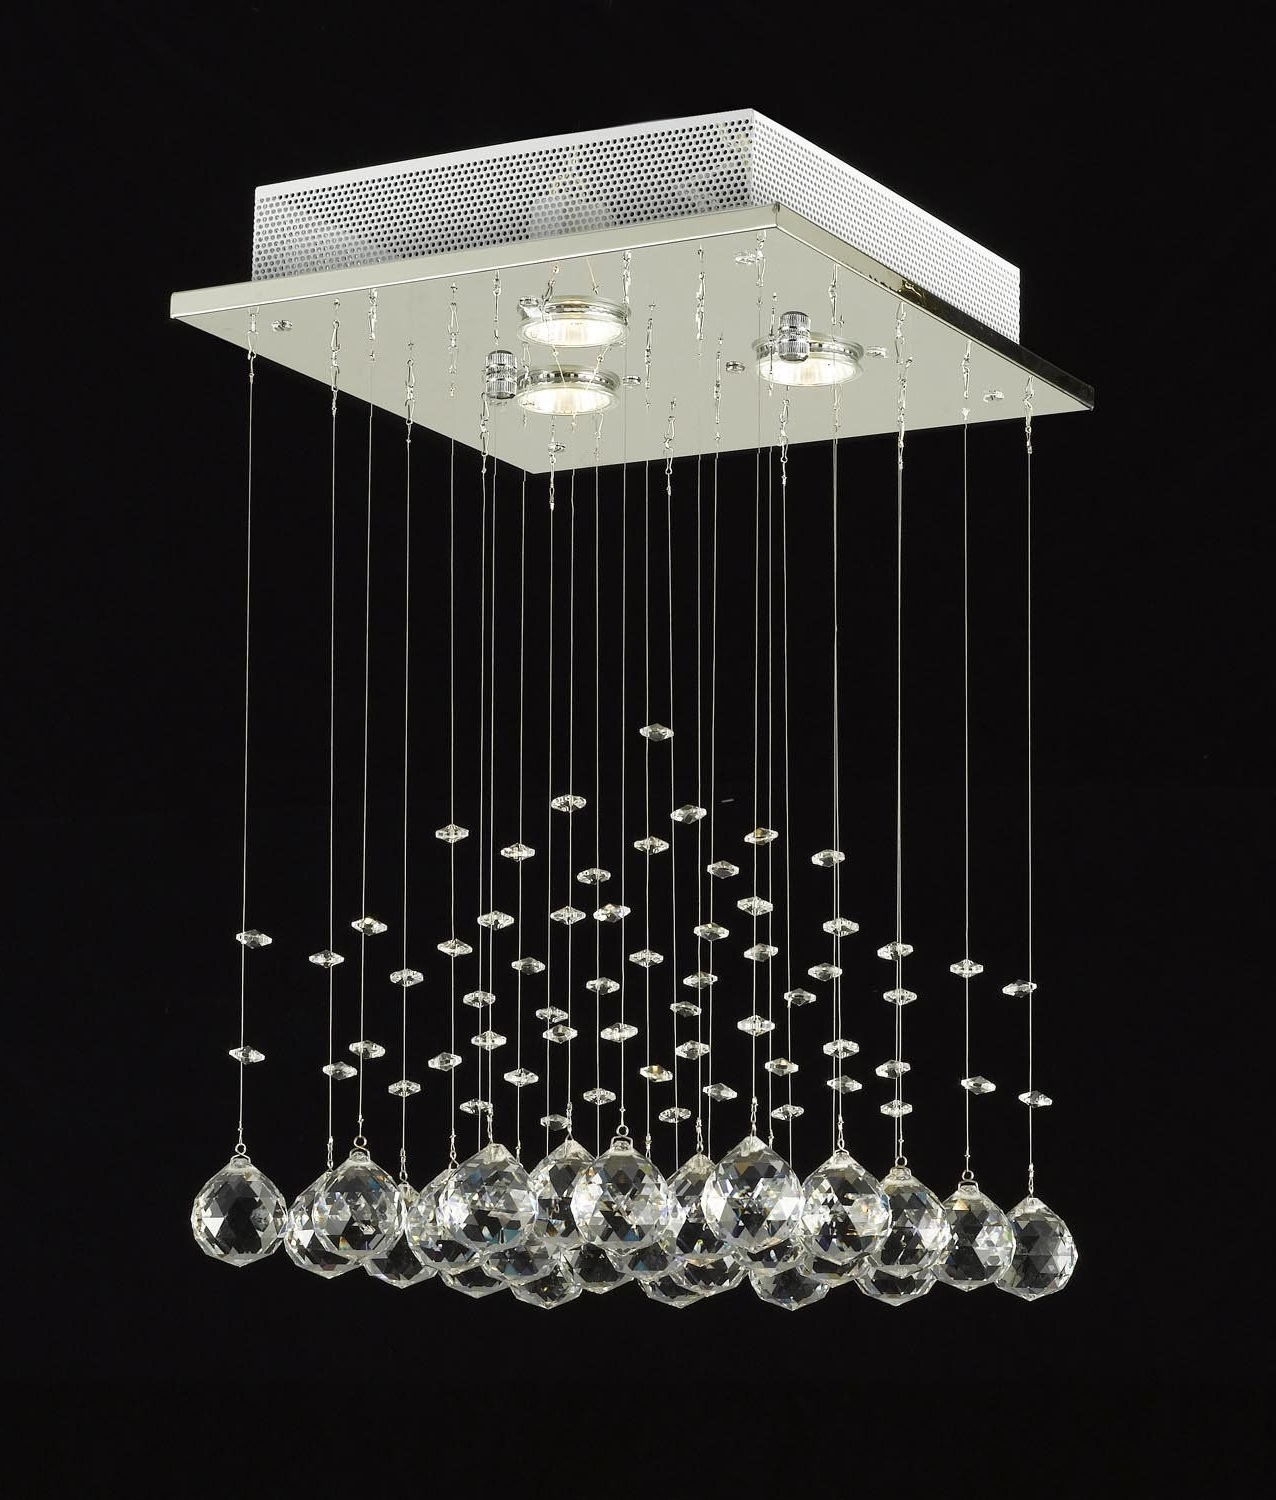 Crystal Ball, Chandeliers And Intended For Well Known Modern Light Chandelier (View 3 of 15)